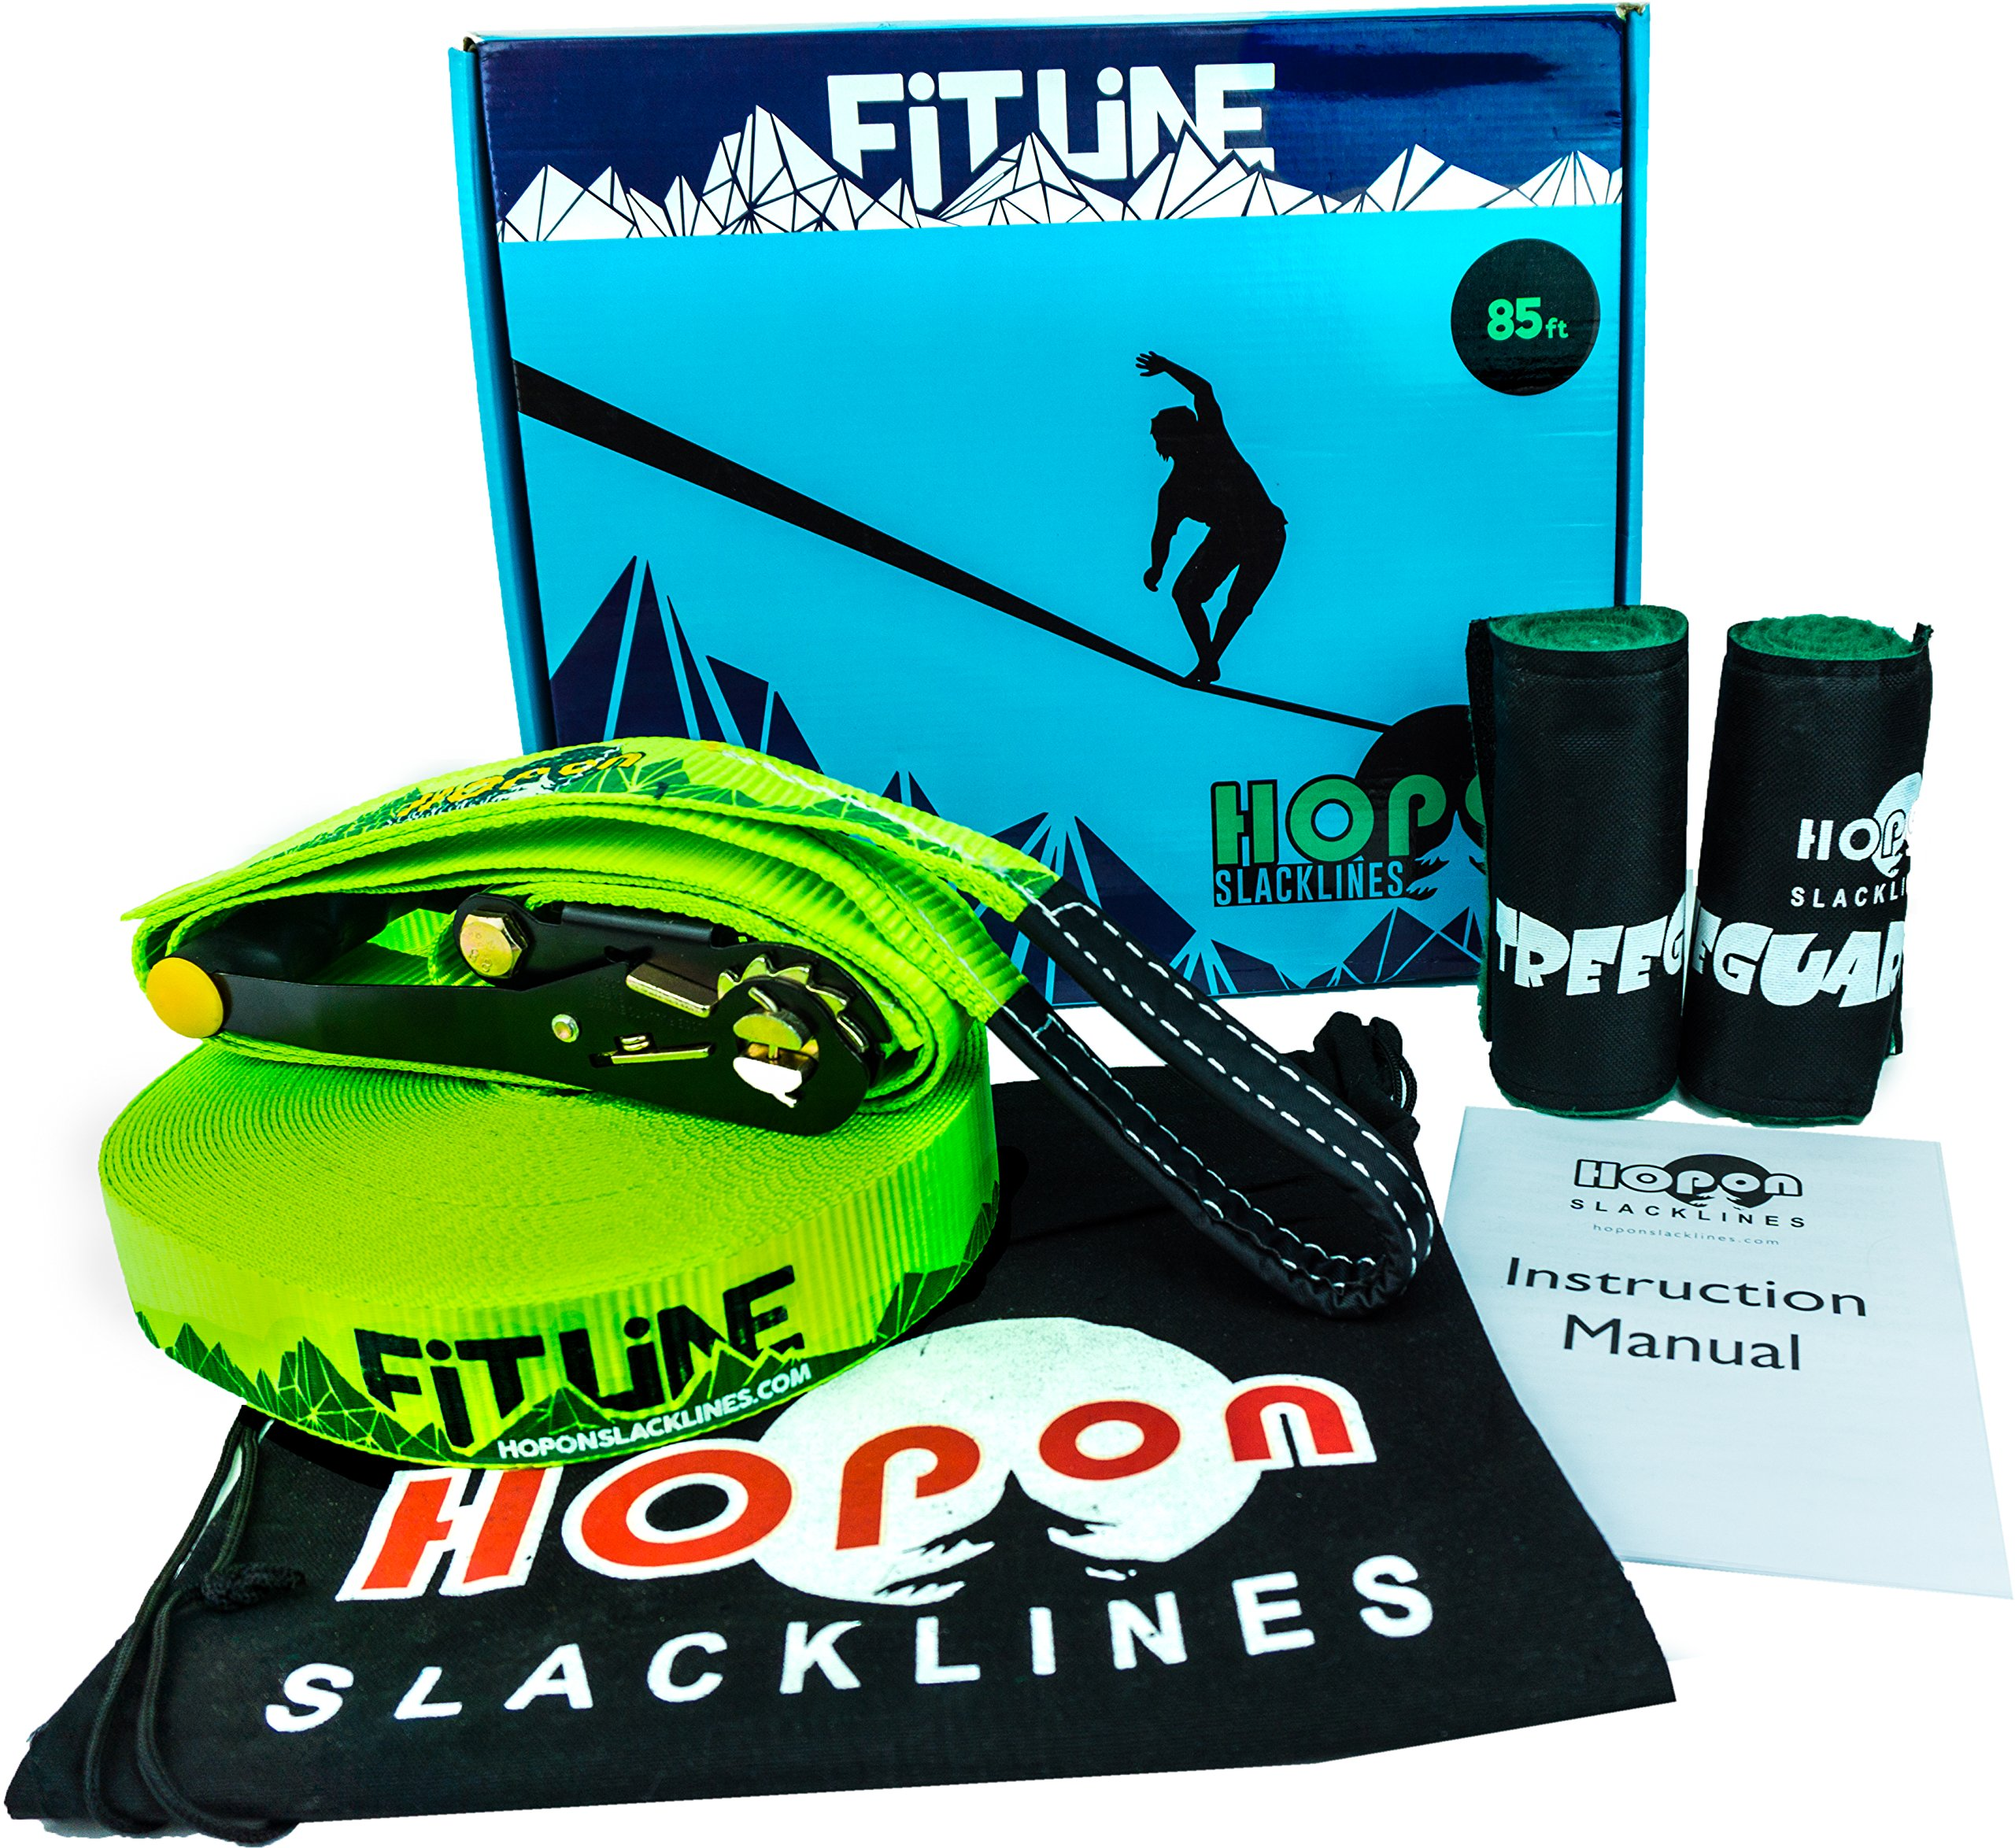 HopOn 85ft Longline Slackline Kit with Ratchet and Tree Protection - Green by HopOn Slacklines